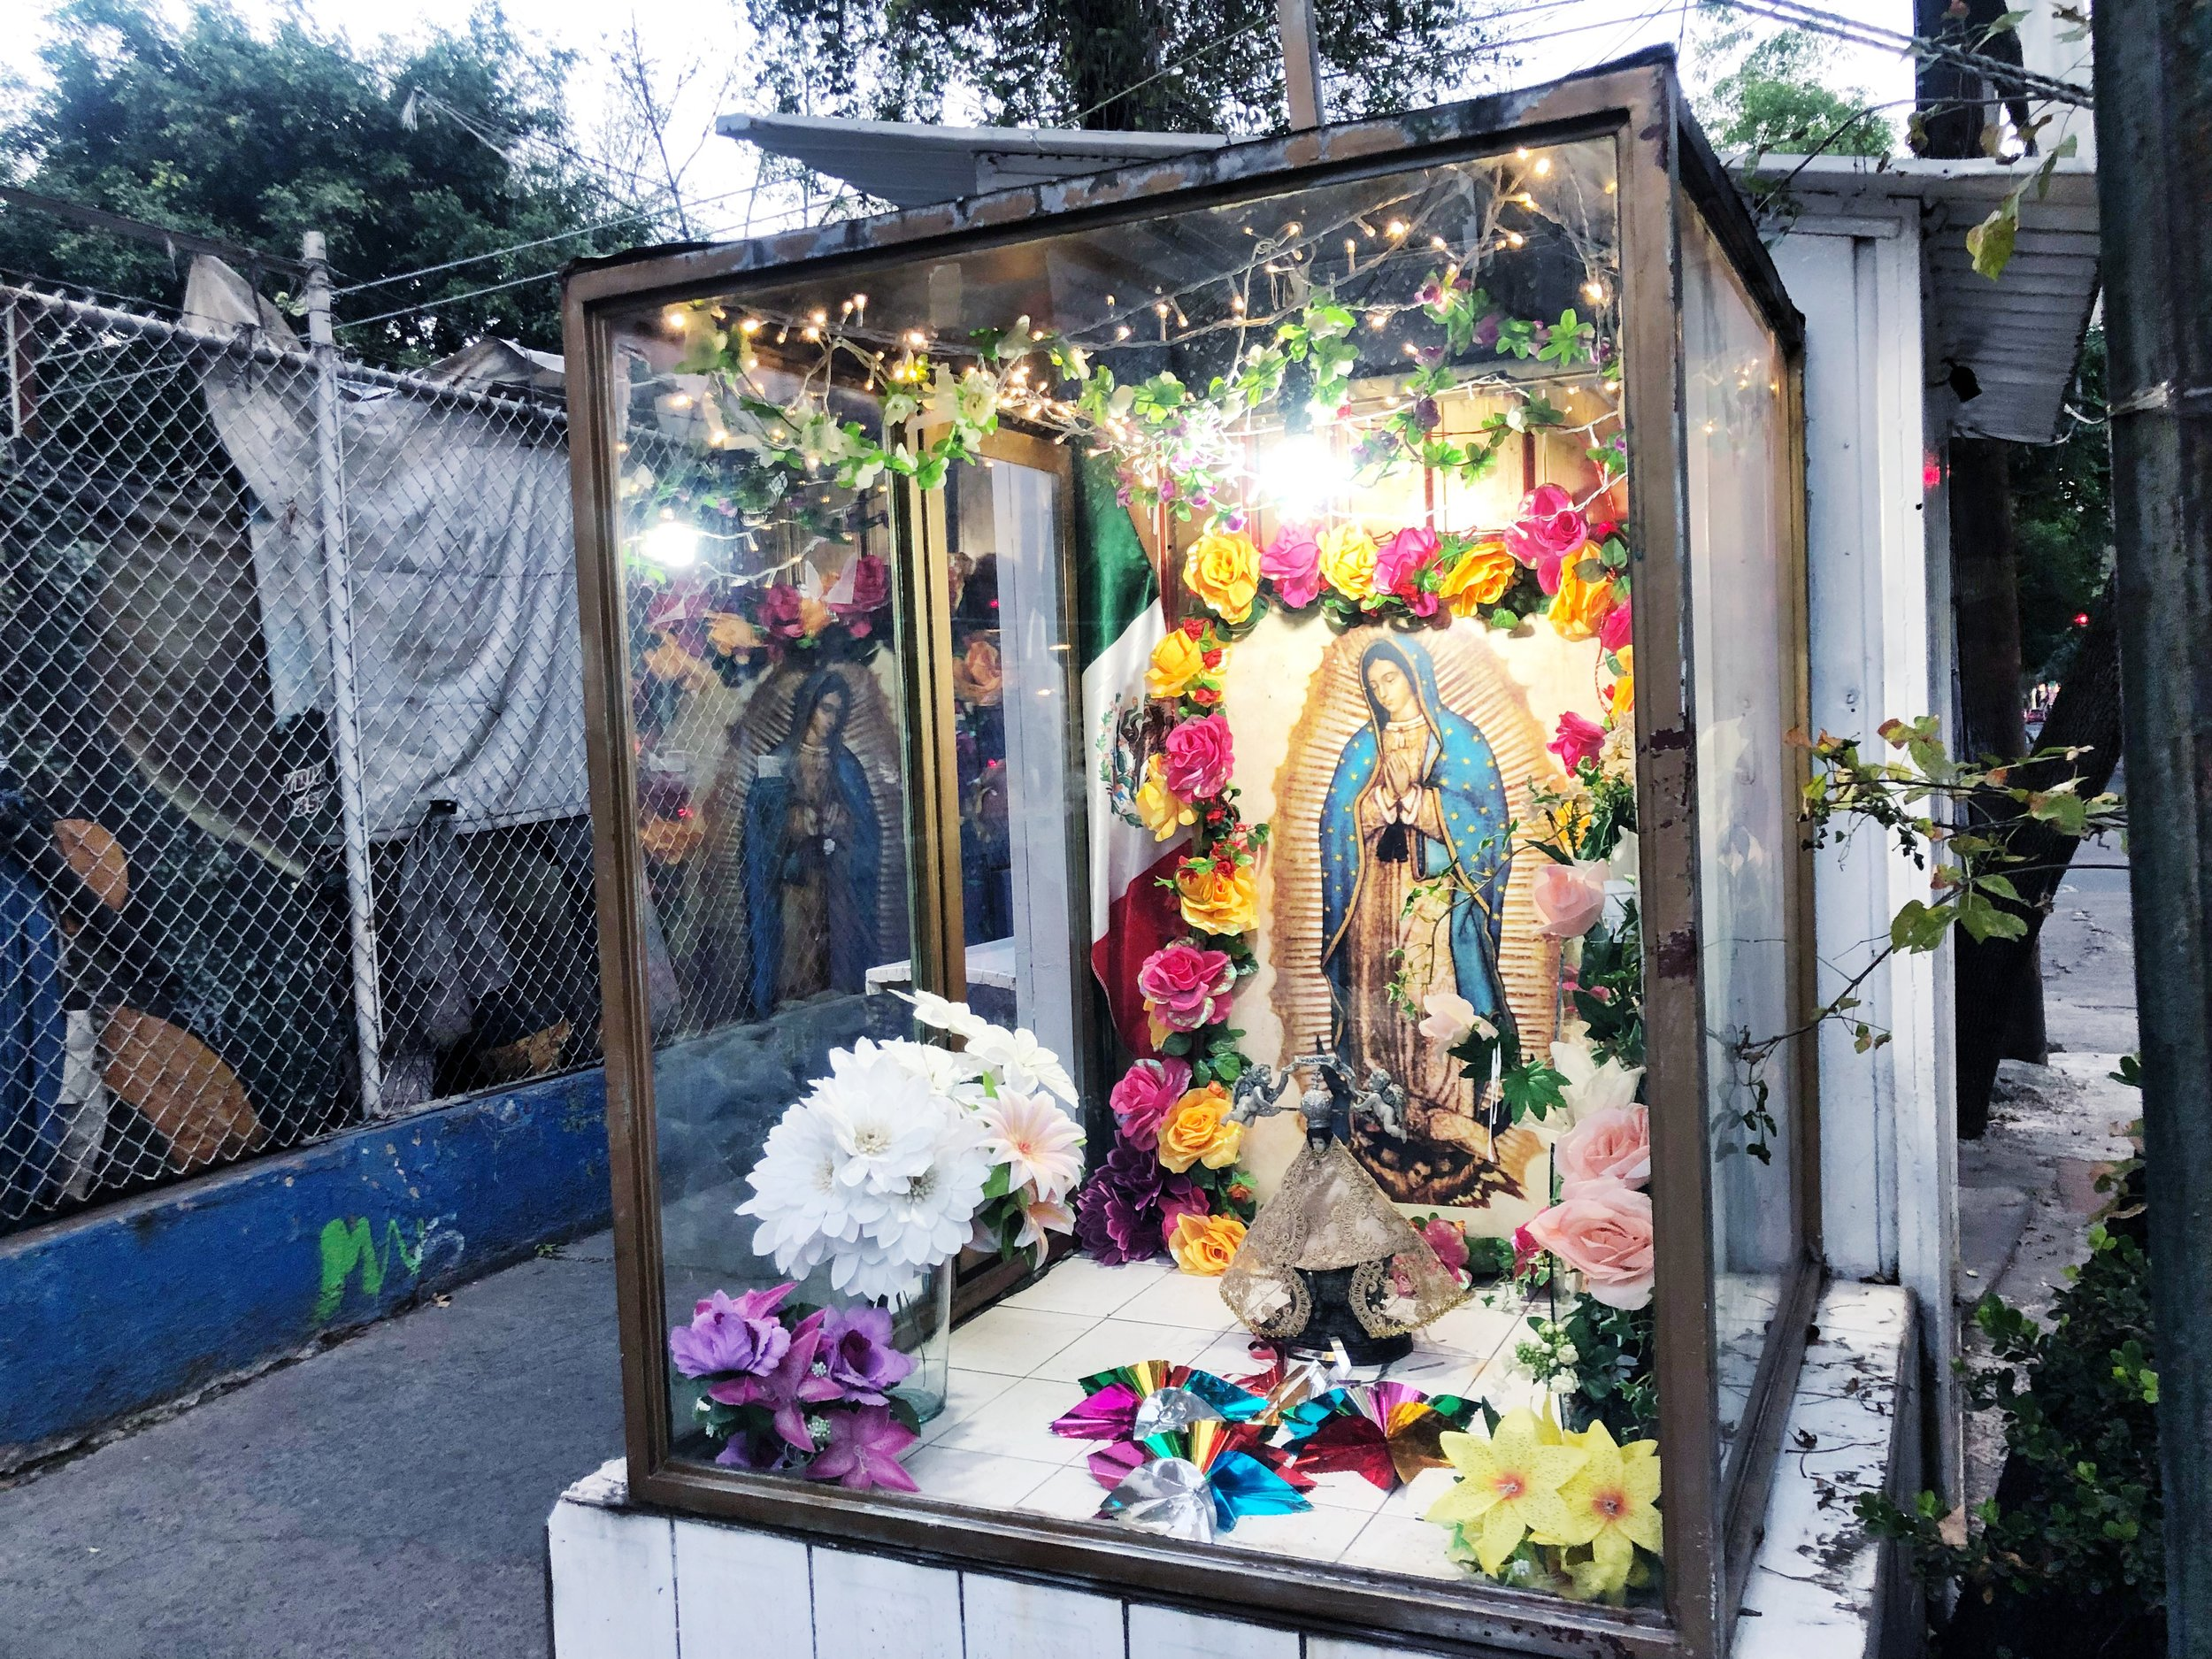 Small shrines in honor of Mexico's Patron Saint, The Virgin Mary of Guadalupe can be found throughout Mexico City's neighborhoods, regardless of the  colonia's  socioeconomic status.